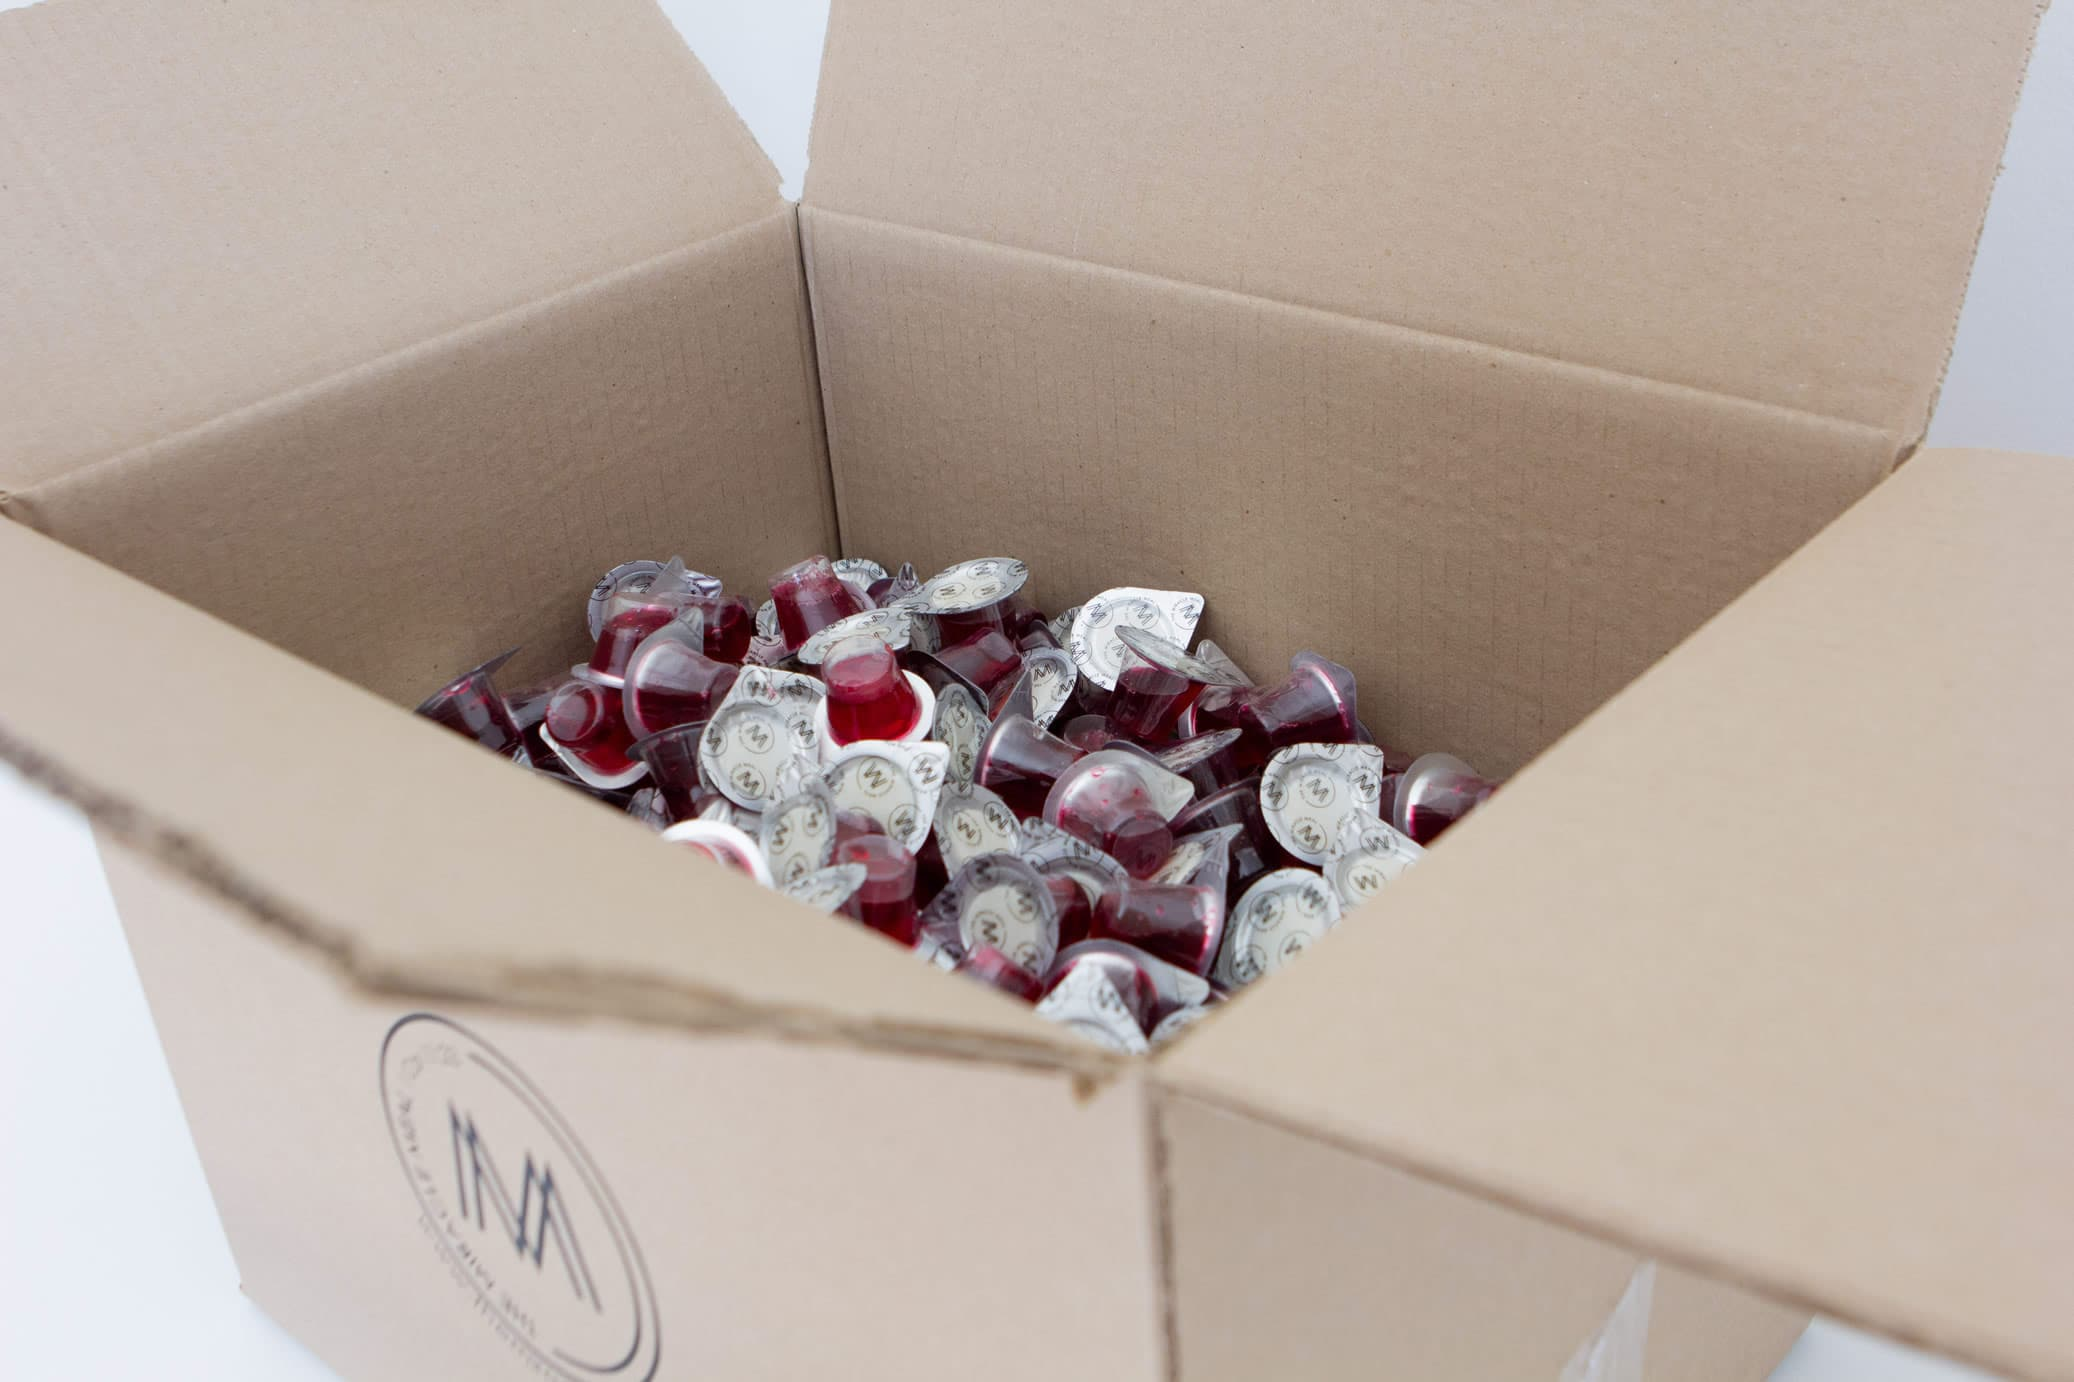 BOX OF 250 PRE PACKAGED COMMUNION CUPS WITH WAFER & JUICE – Canada